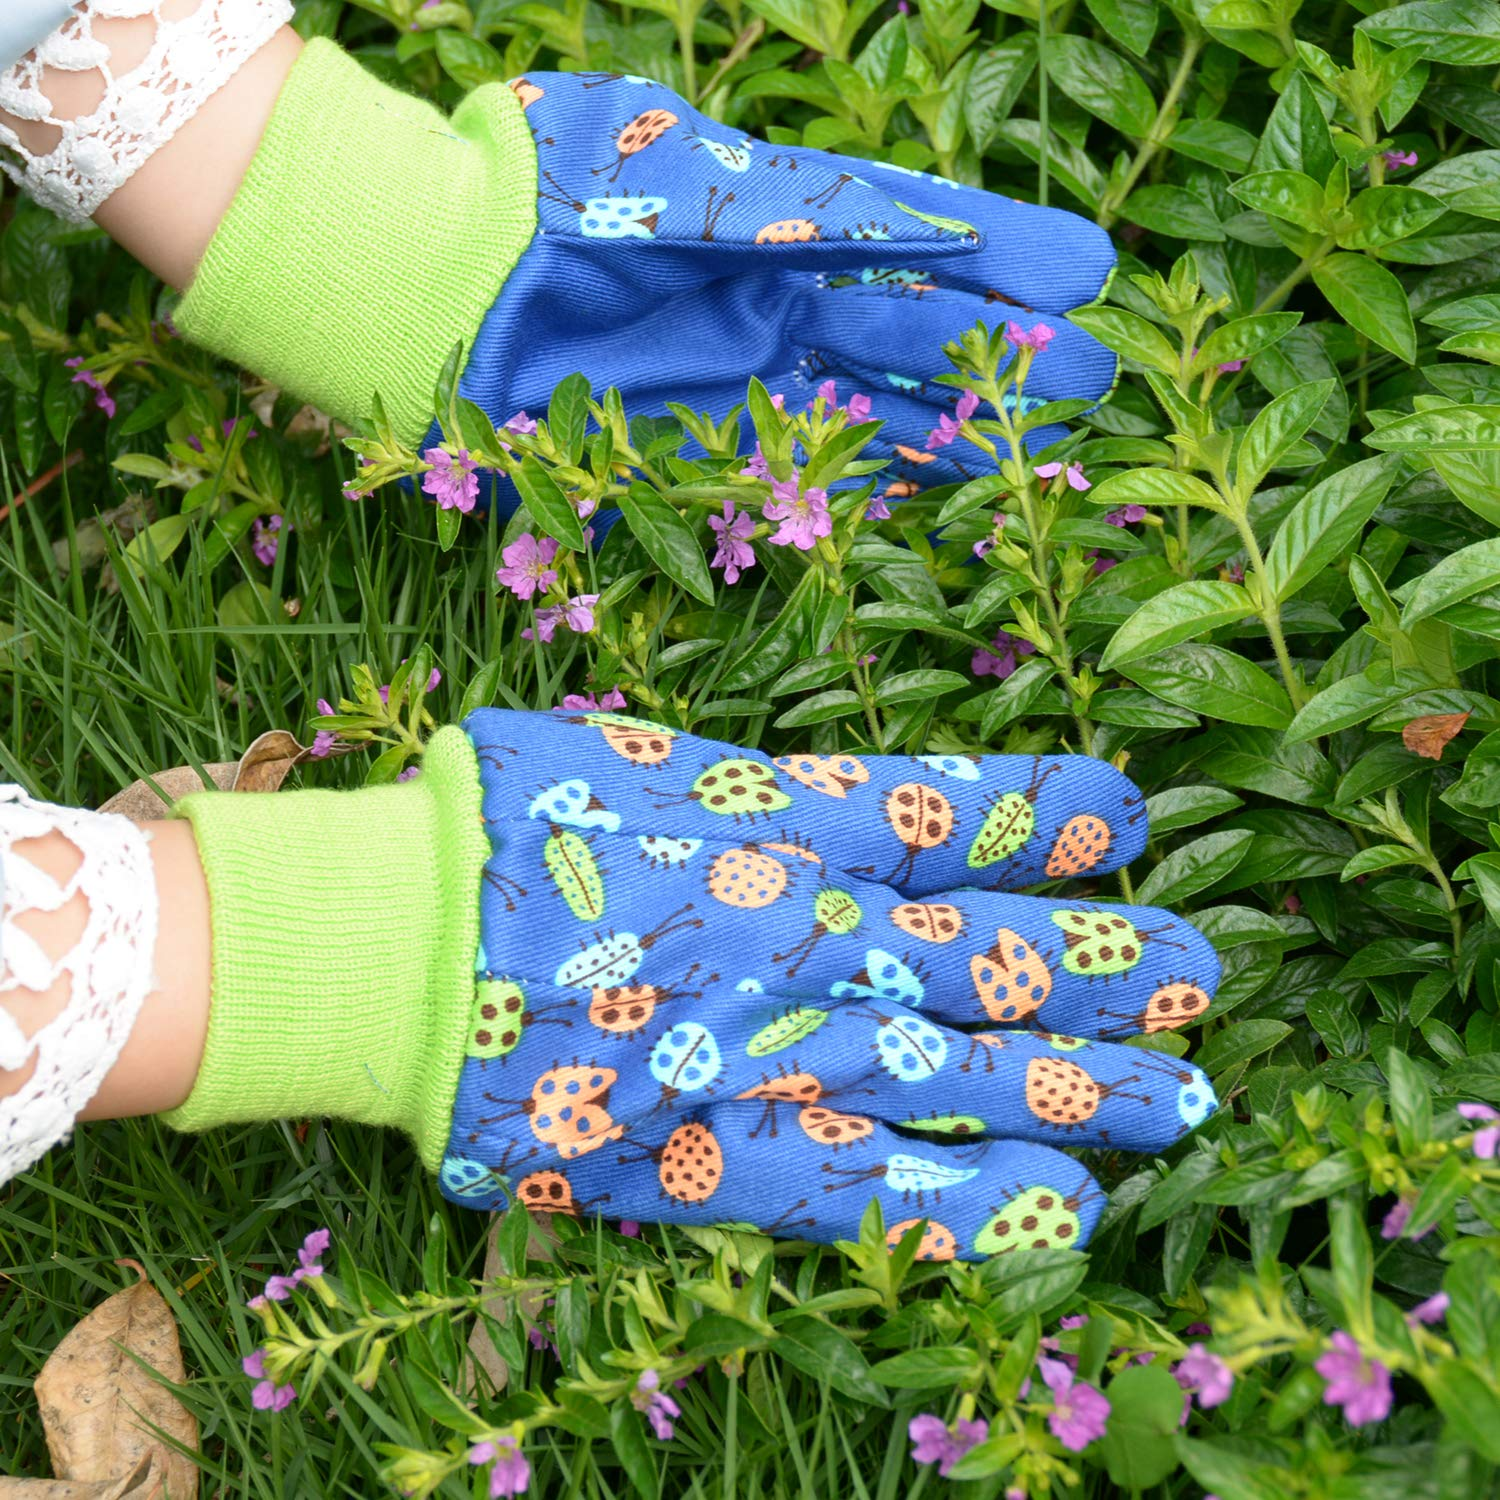 age 7-8 Kids Gardening gloves for age 5-6 age7-8 Dot /& Butterfly /& Ladybird Print 2 Pairs Cotton Garden Gloves for girls boys Medium Pink butterfly + dot